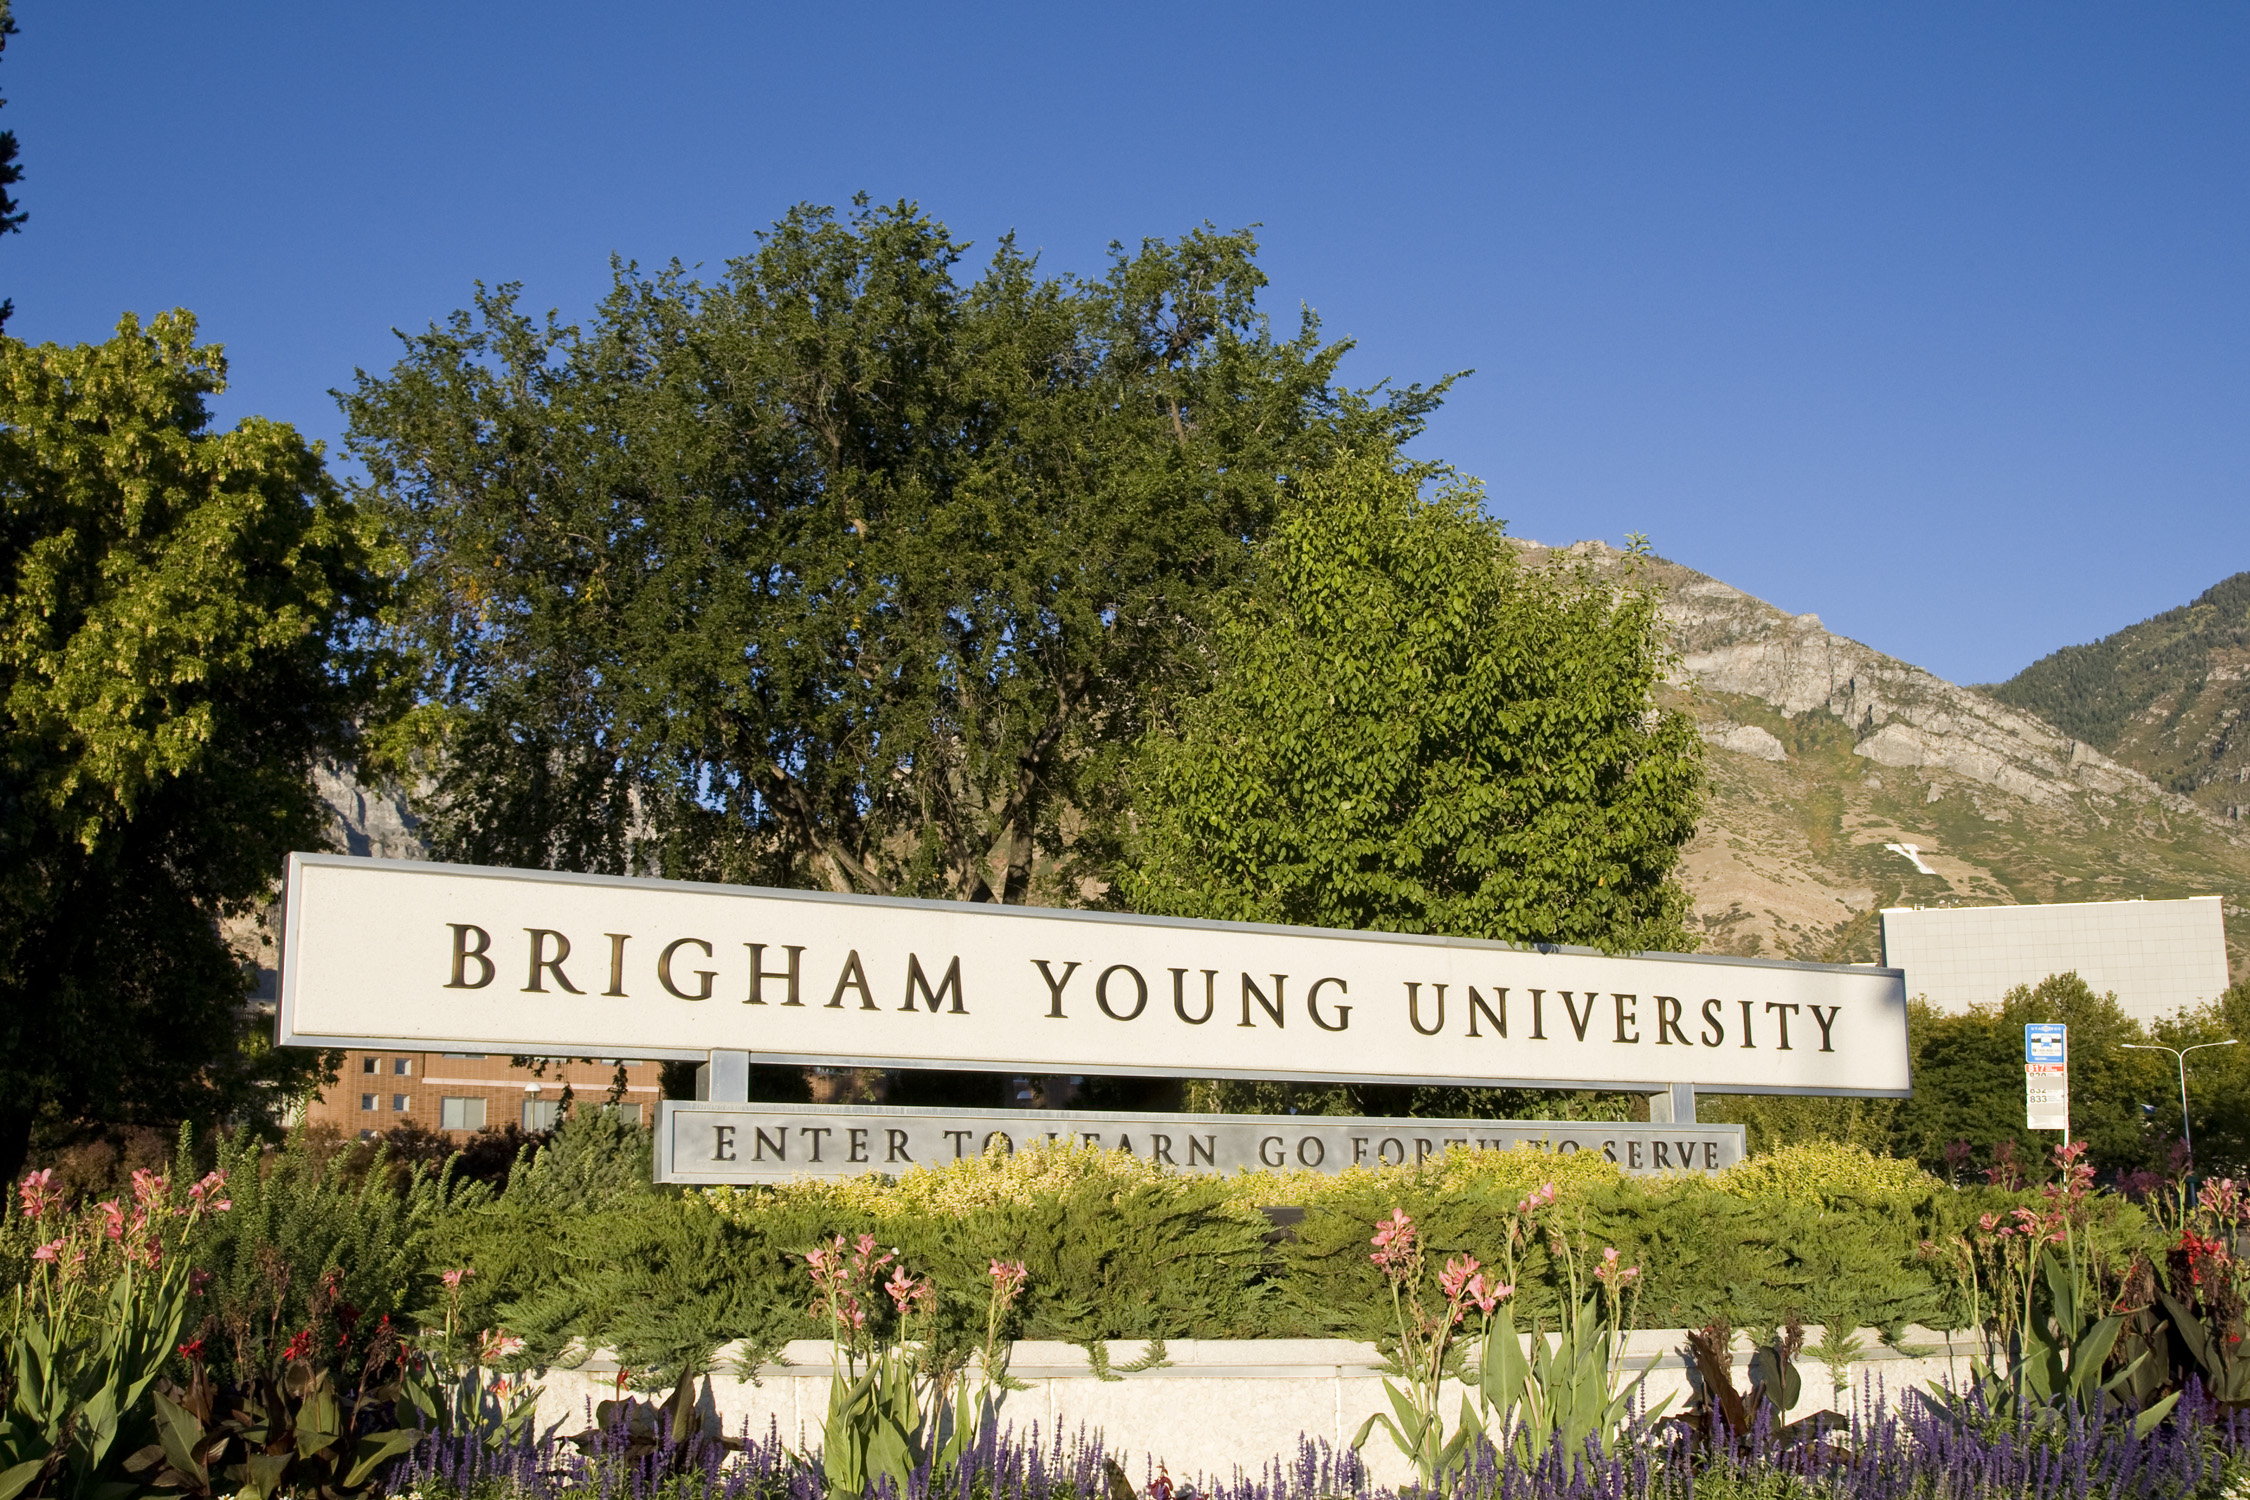 picture taken from www.et.byu.edu